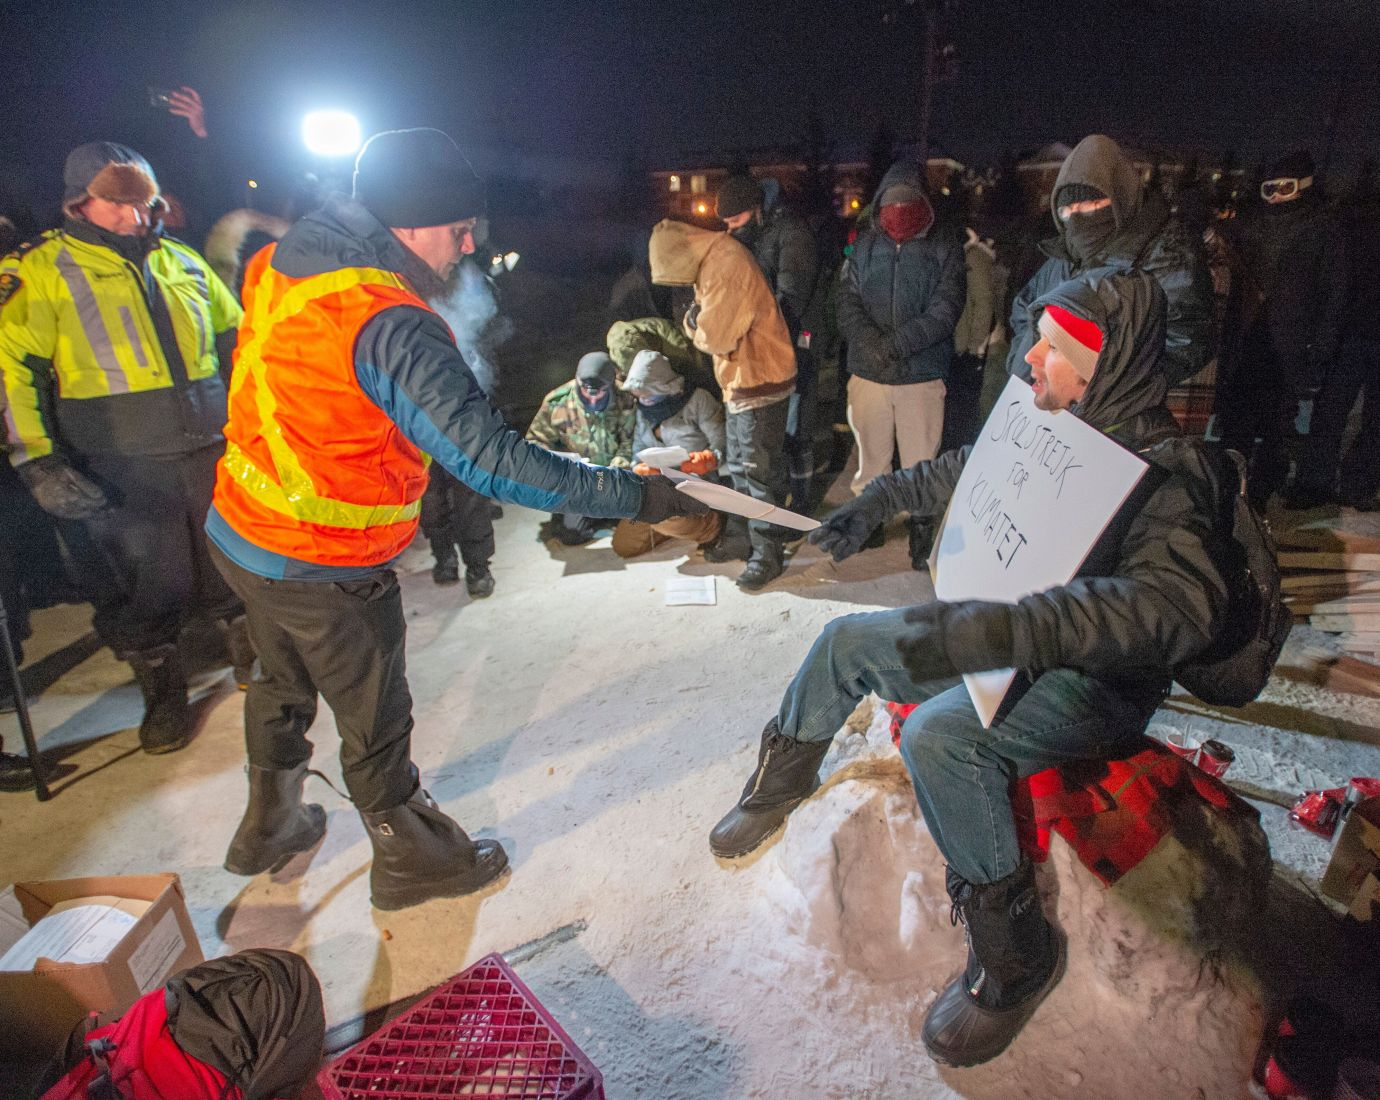 Police serve an injunction to protesters at a rail blockade in St-Lambert, south of Montreal, Que. on Thursday.